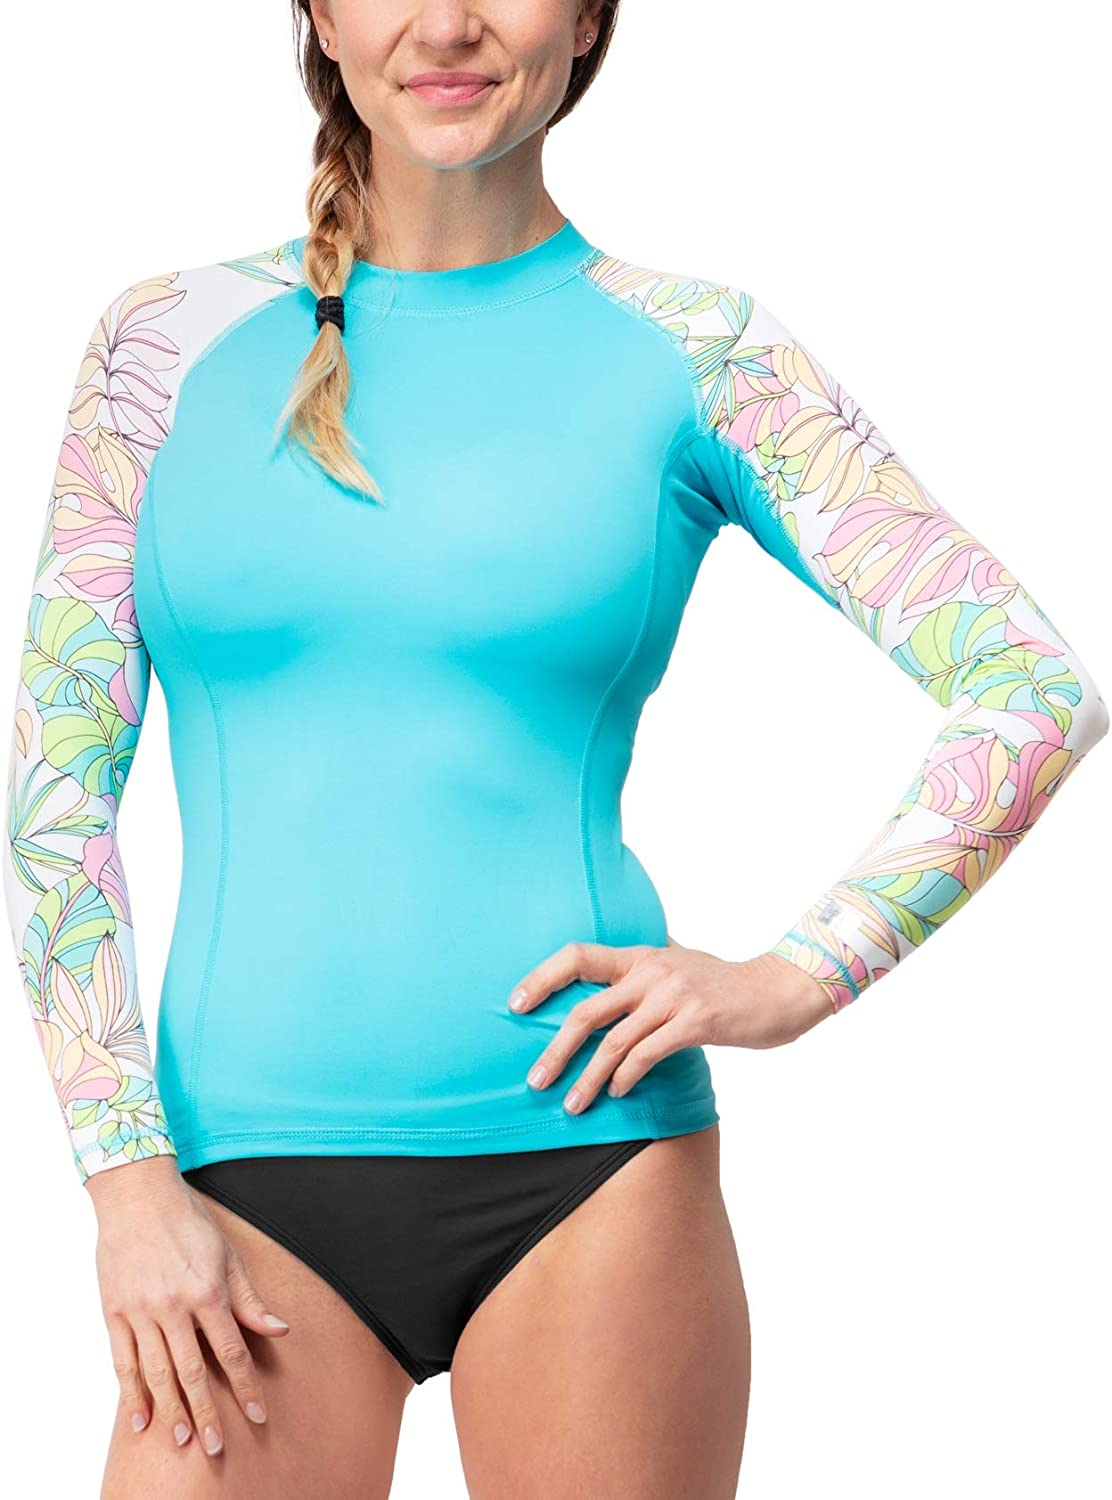 ISLAND DAZE Women's Rashguard - UPF 50 UV Sun Protection - Wetsuit Quick Dry Activewear